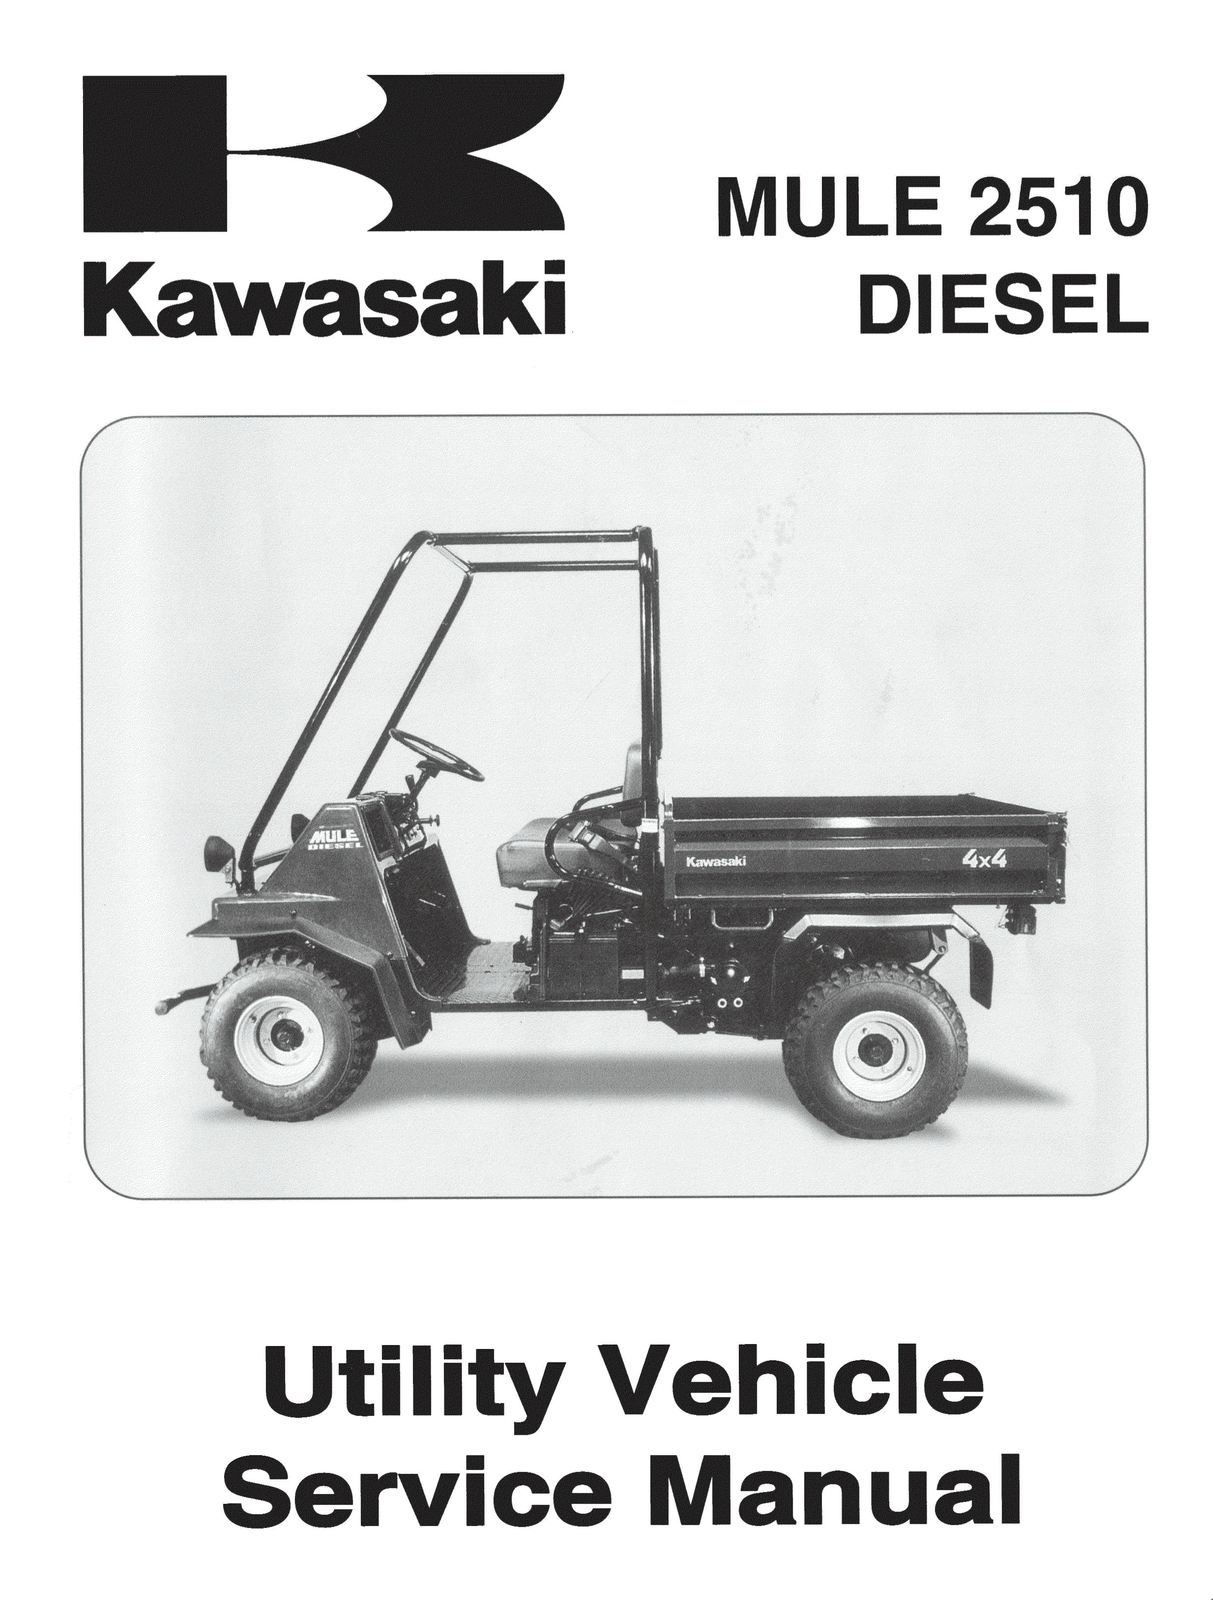 Pages from kawasaki mule 2510 diesel service